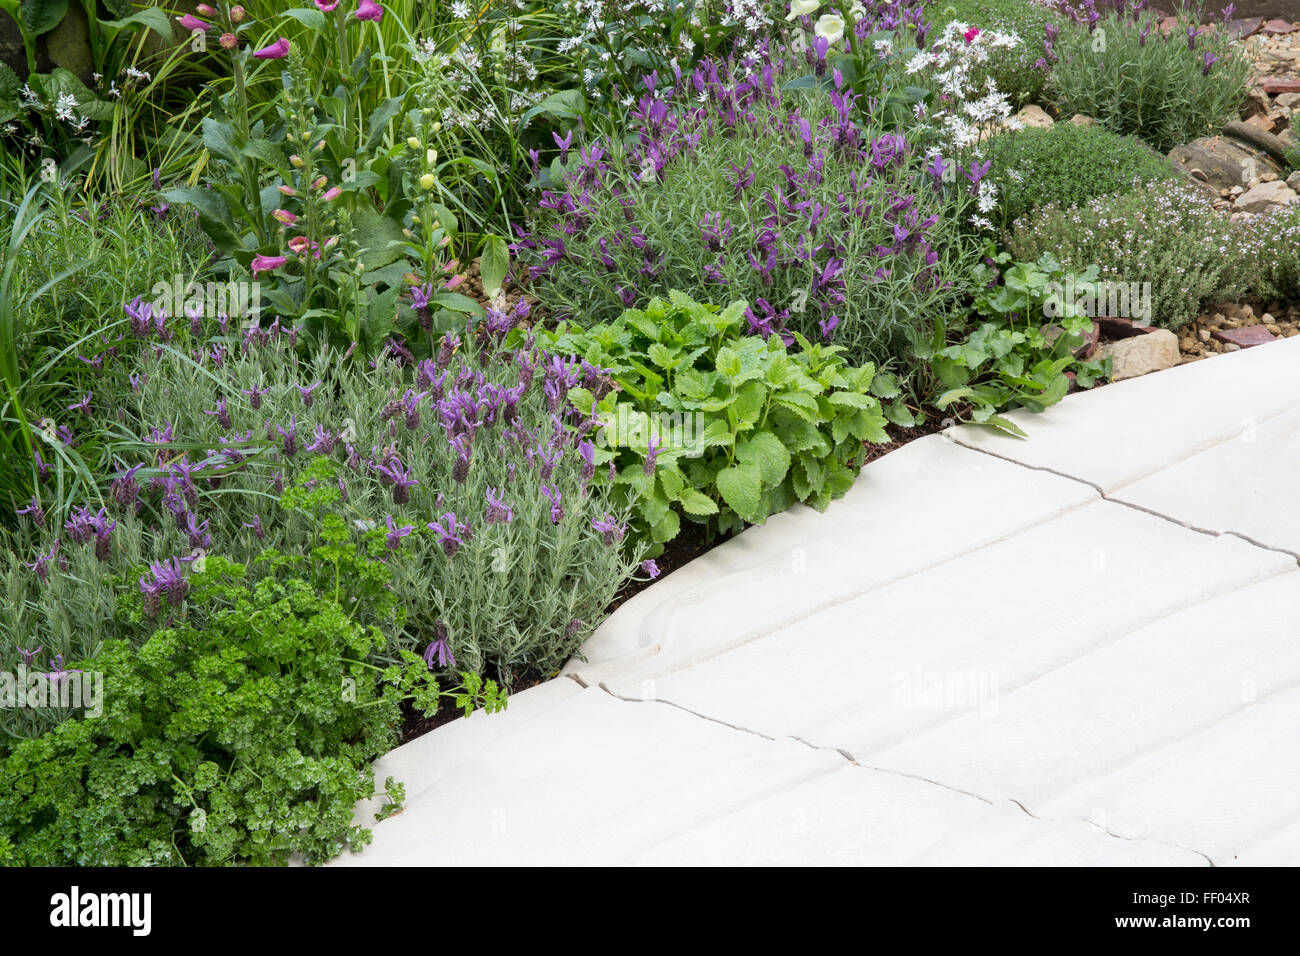 Landscaping With Herbs : The evaders garden portland stone path lined with herbs parsley